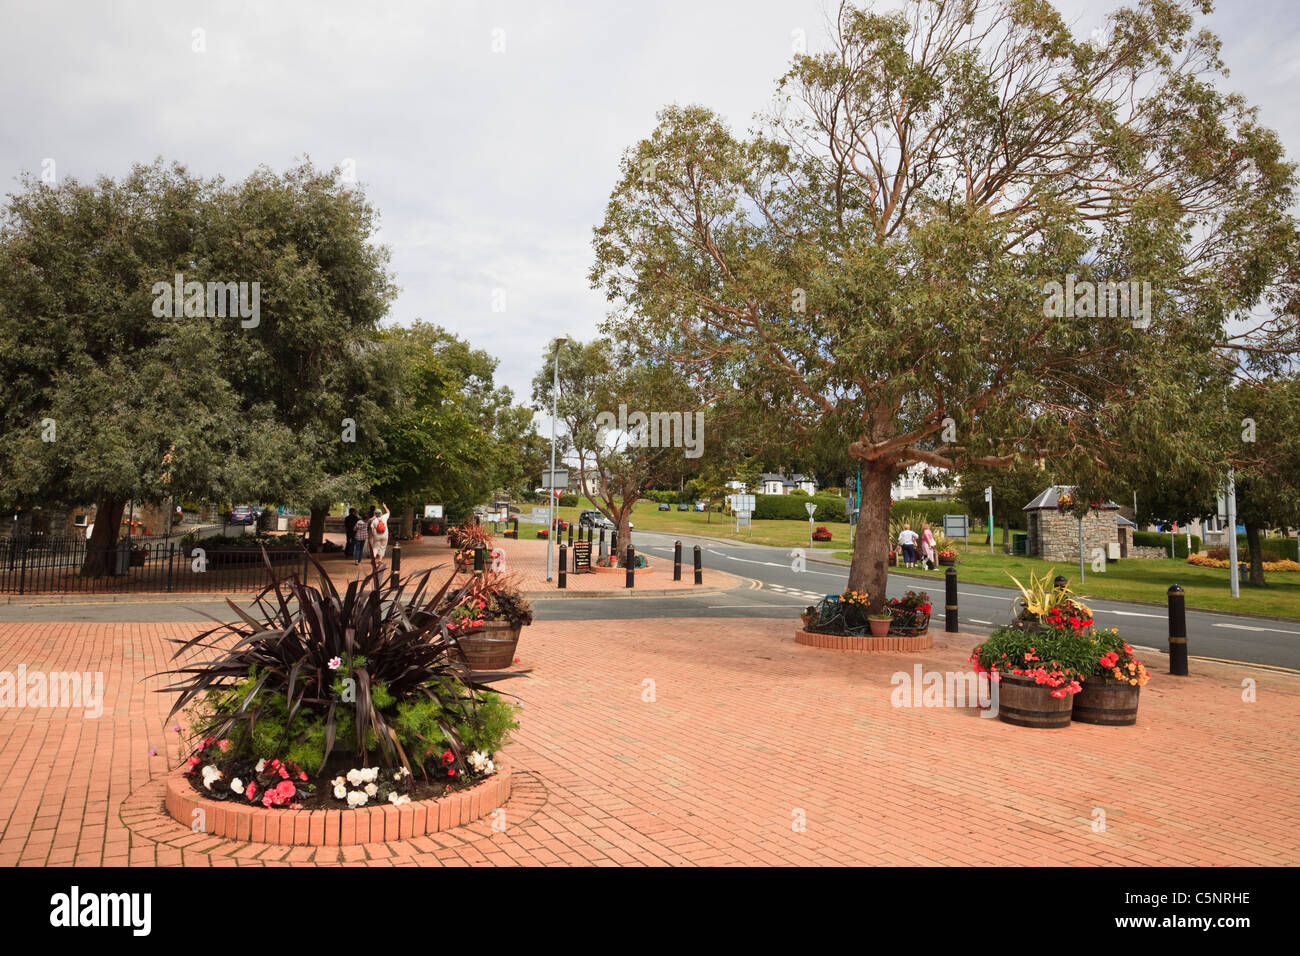 Y Maes, Criccieth, Llyn Peninsula, Gwynedd, North Wales, UK. Block paved square with flower tubs and trees in summer - Stock Image